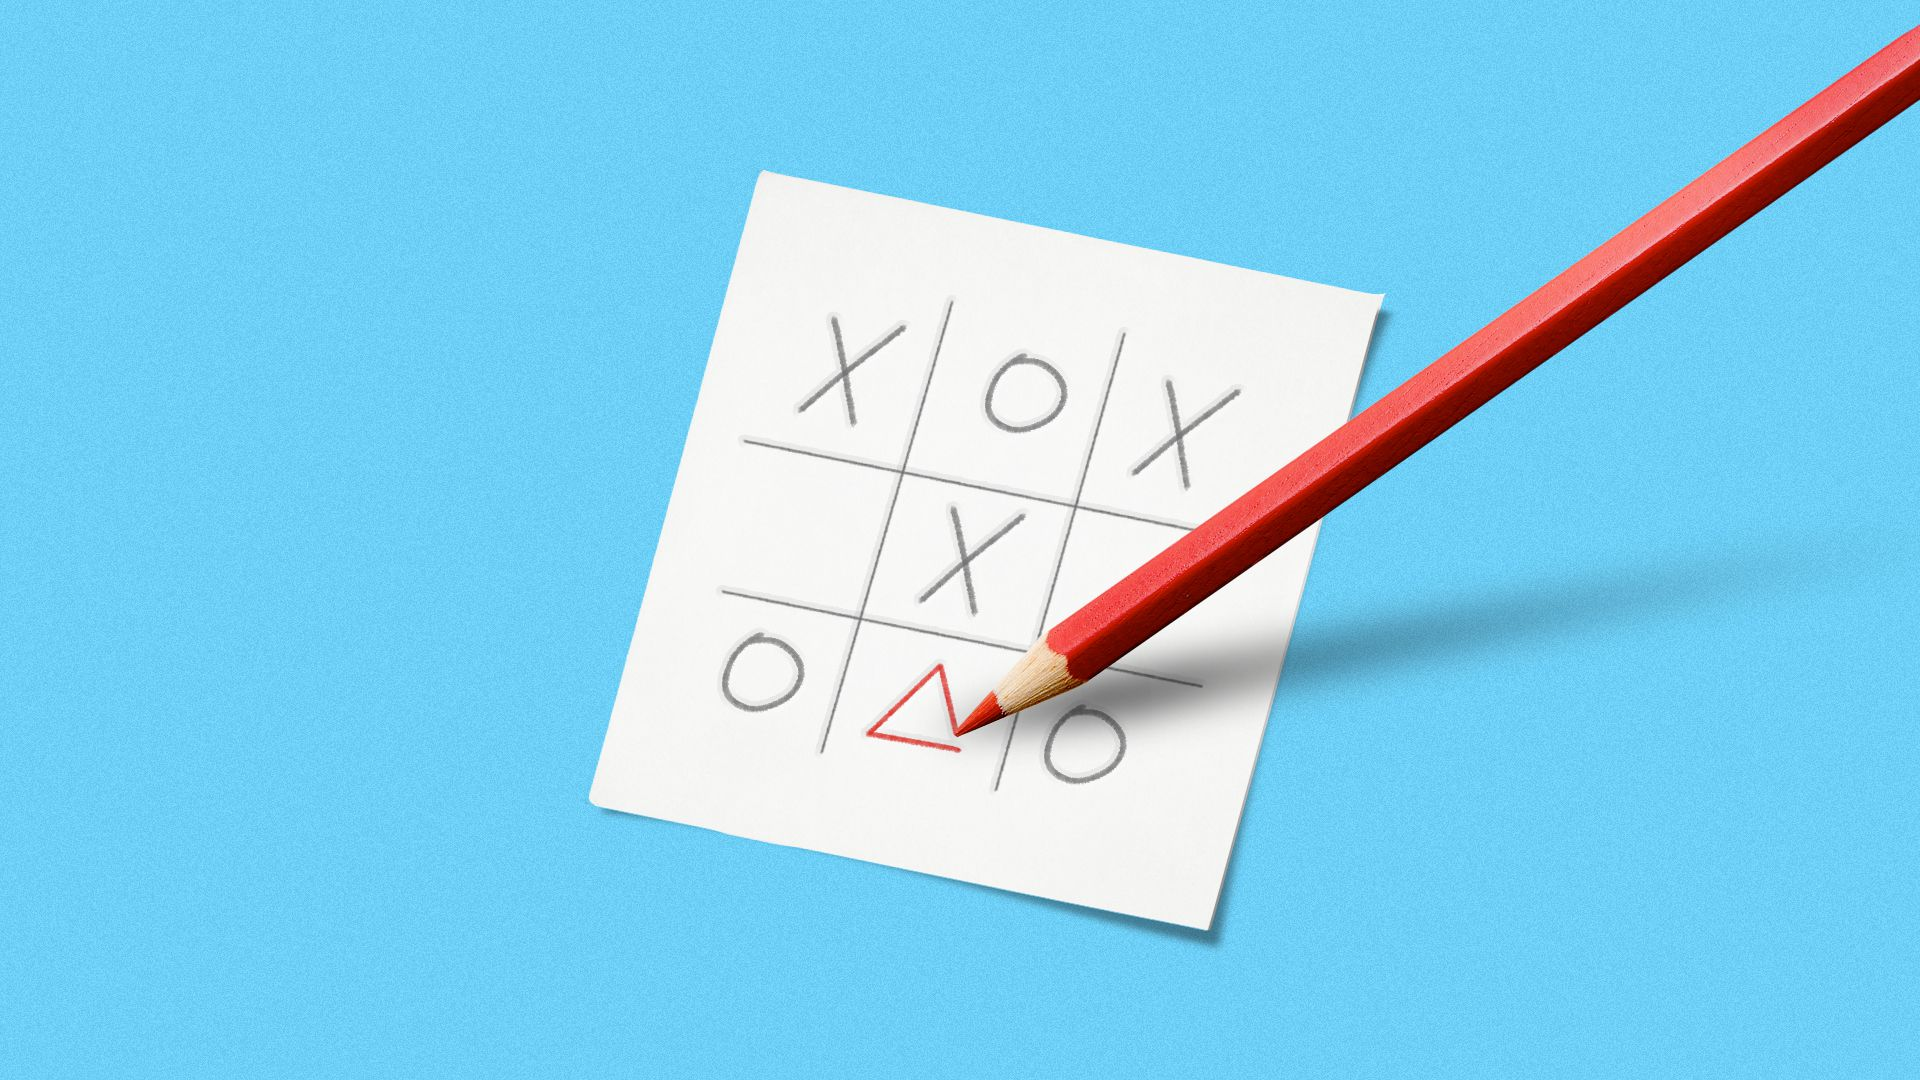 Illustration of a tic-tac-toe game with a pencil drawing a triangle in the grid.